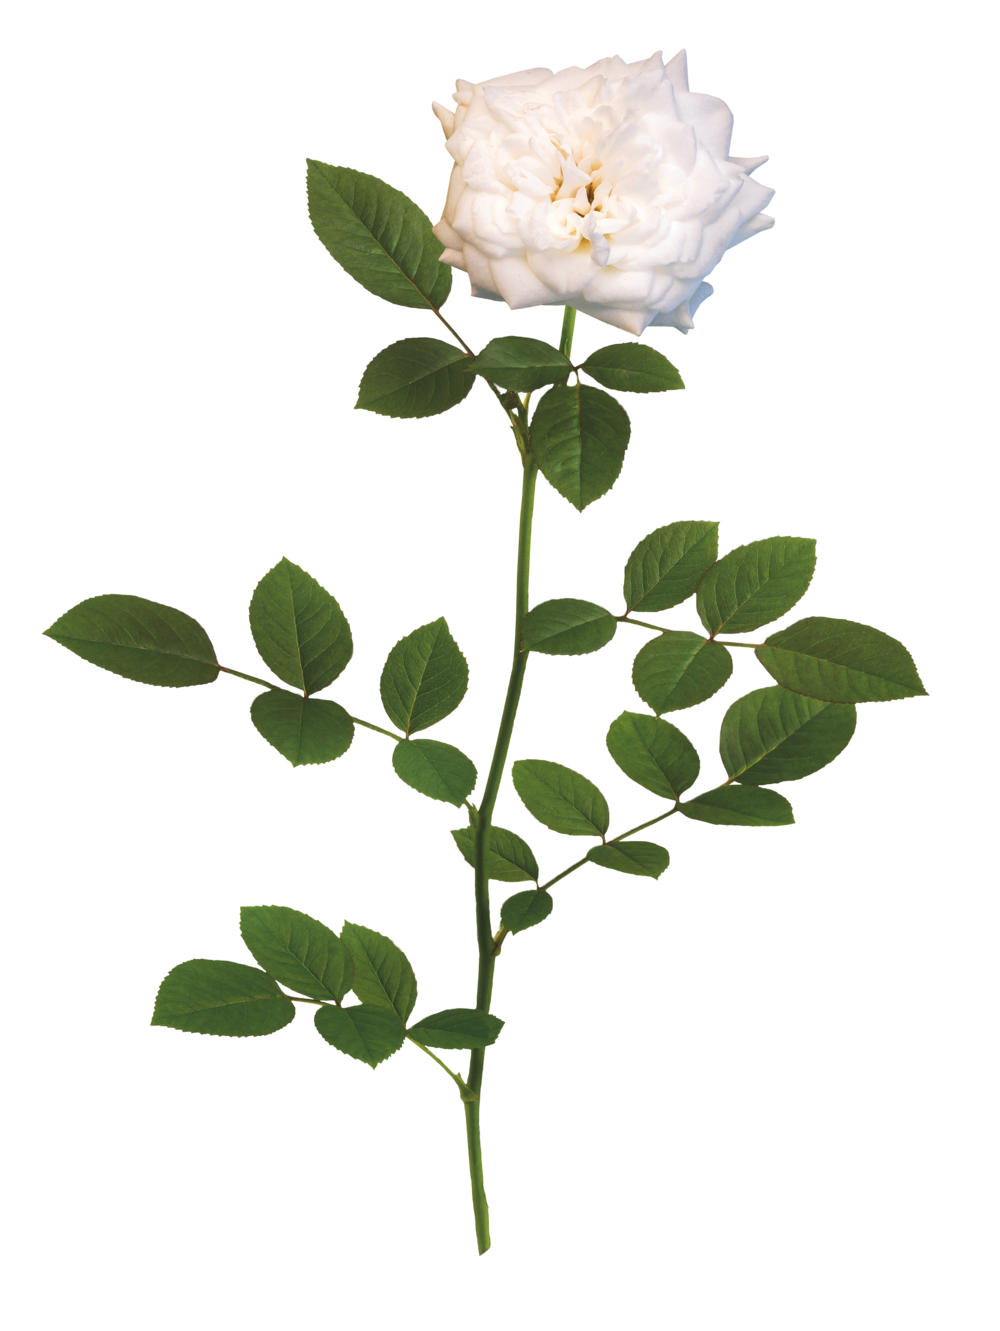 The White Drift® Rose - 'Meizorland' PPAFWhite Drift® has pure white, fully double flowers that are perfectly shaped like miniature roses. These impressive white blooms will brighten gardens of all shapes and styles.Zones: 4–11   |   Exposure: Full sun   |   Habit: 1½'h x 3'w